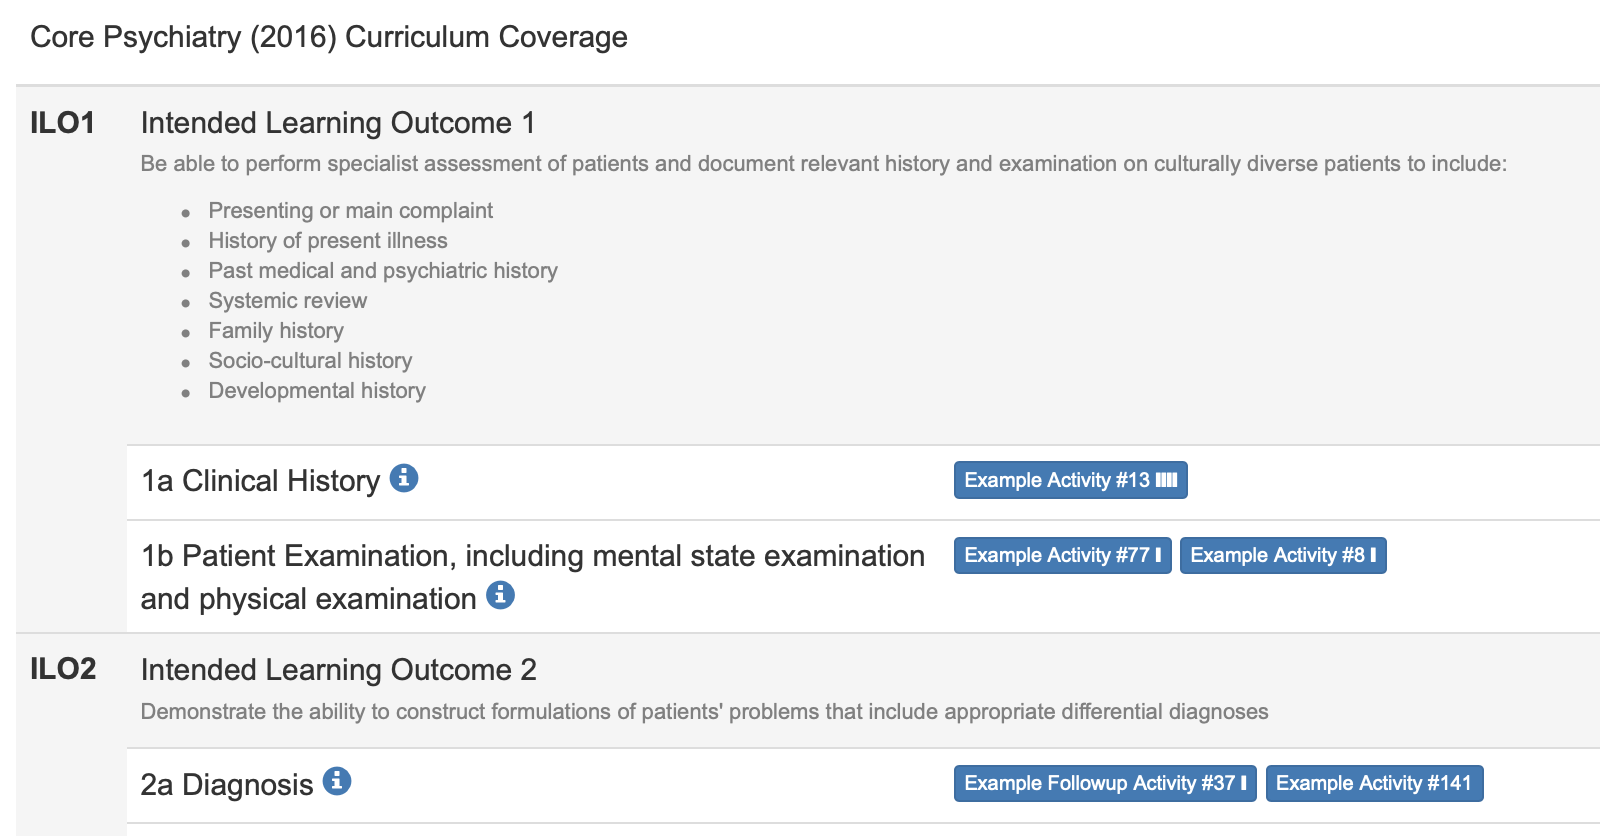 Curriculum_coverage_page.png